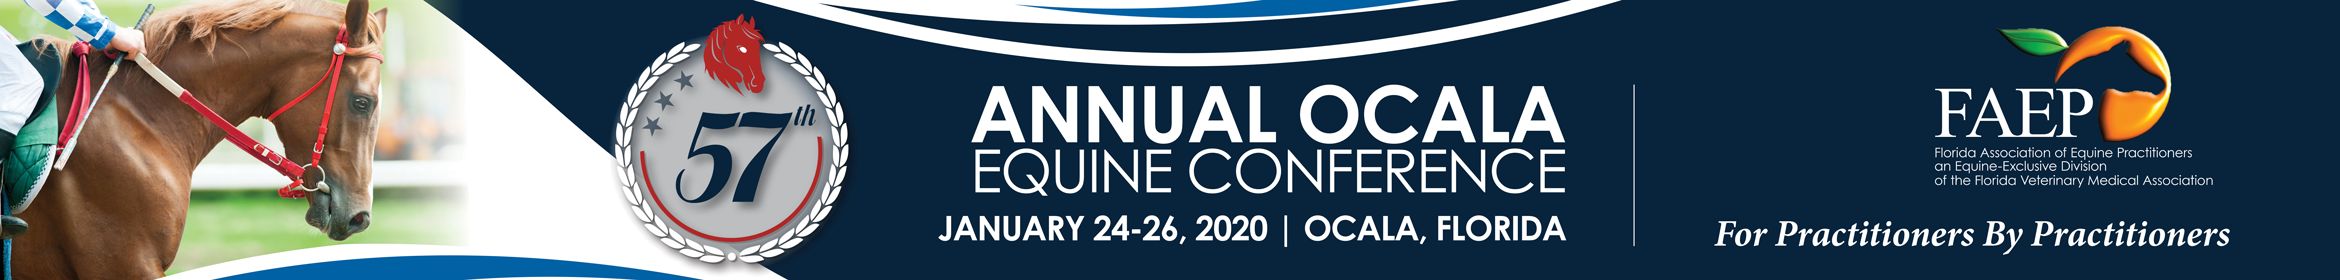 57th Annual FAEP Ocala Equine Conference 2020 Main banner